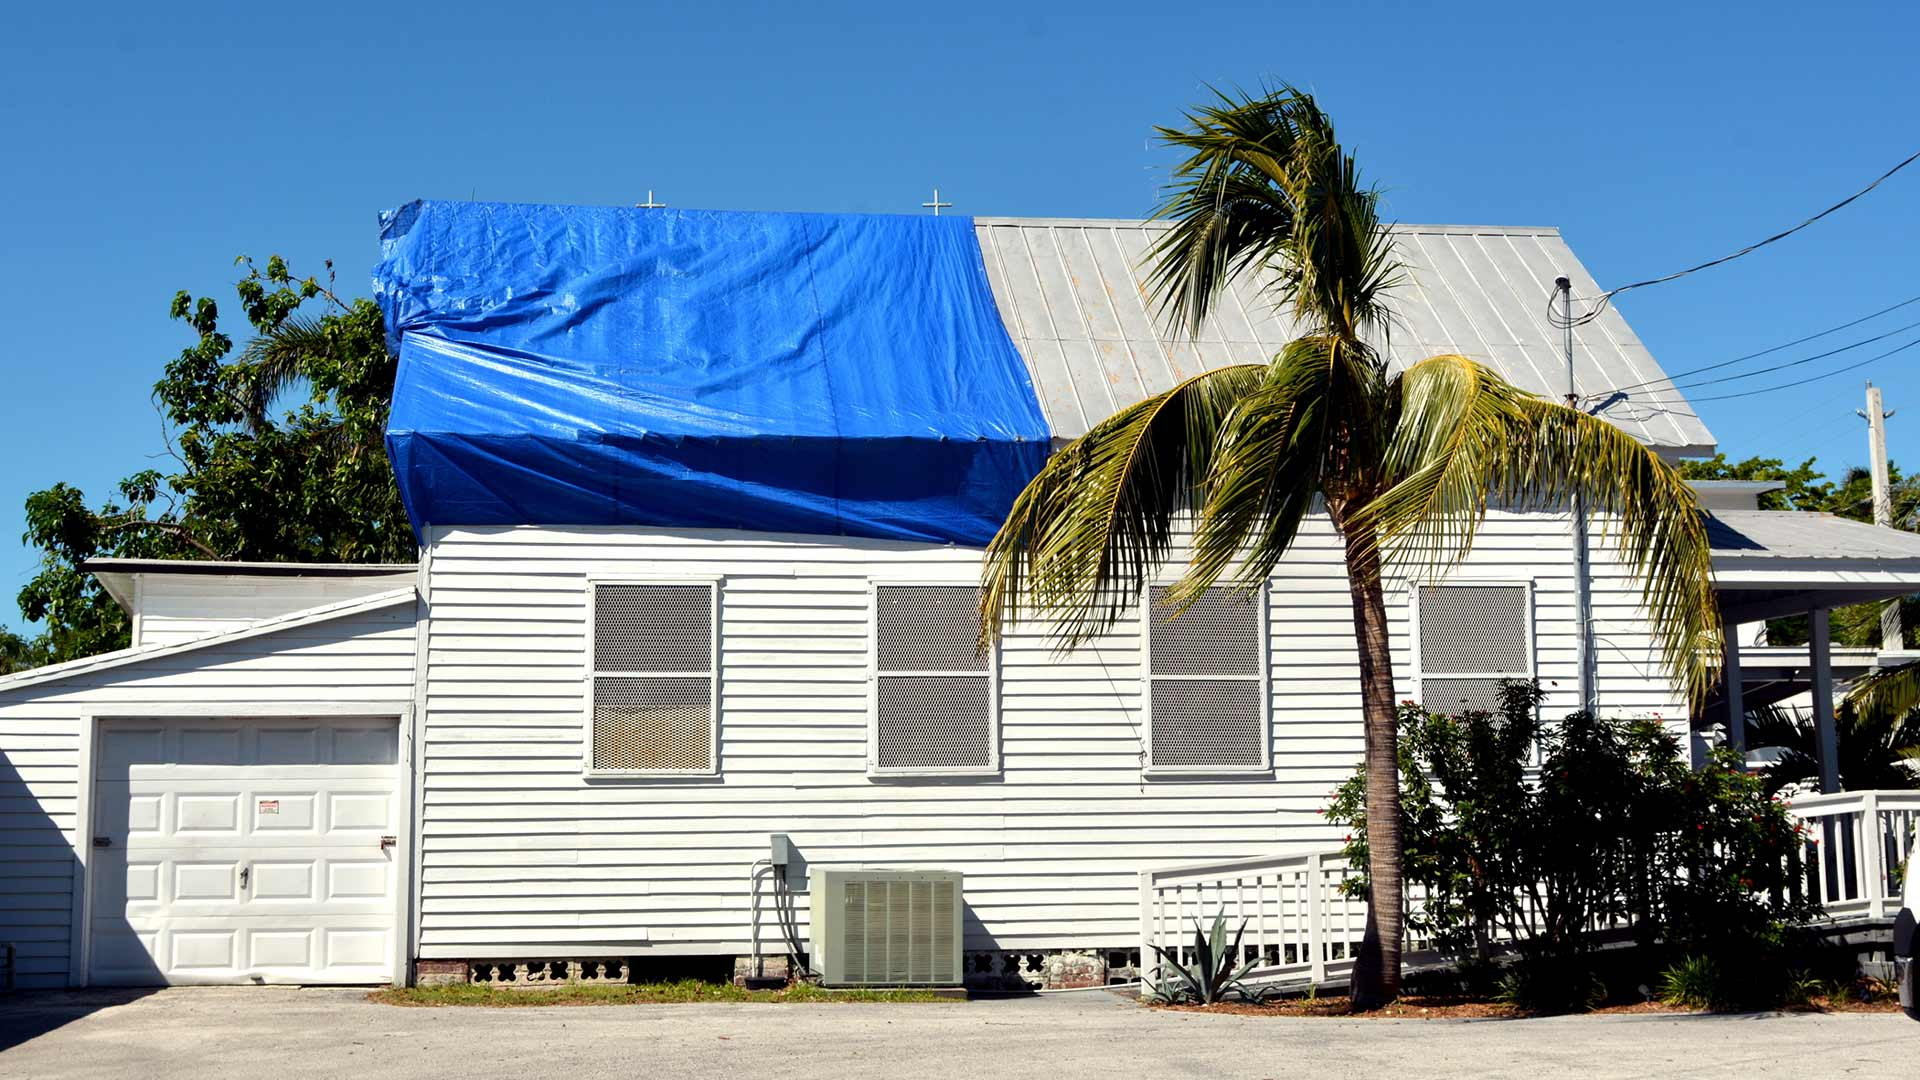 A home in Lakeland, FL with a tarp covering roof damage.